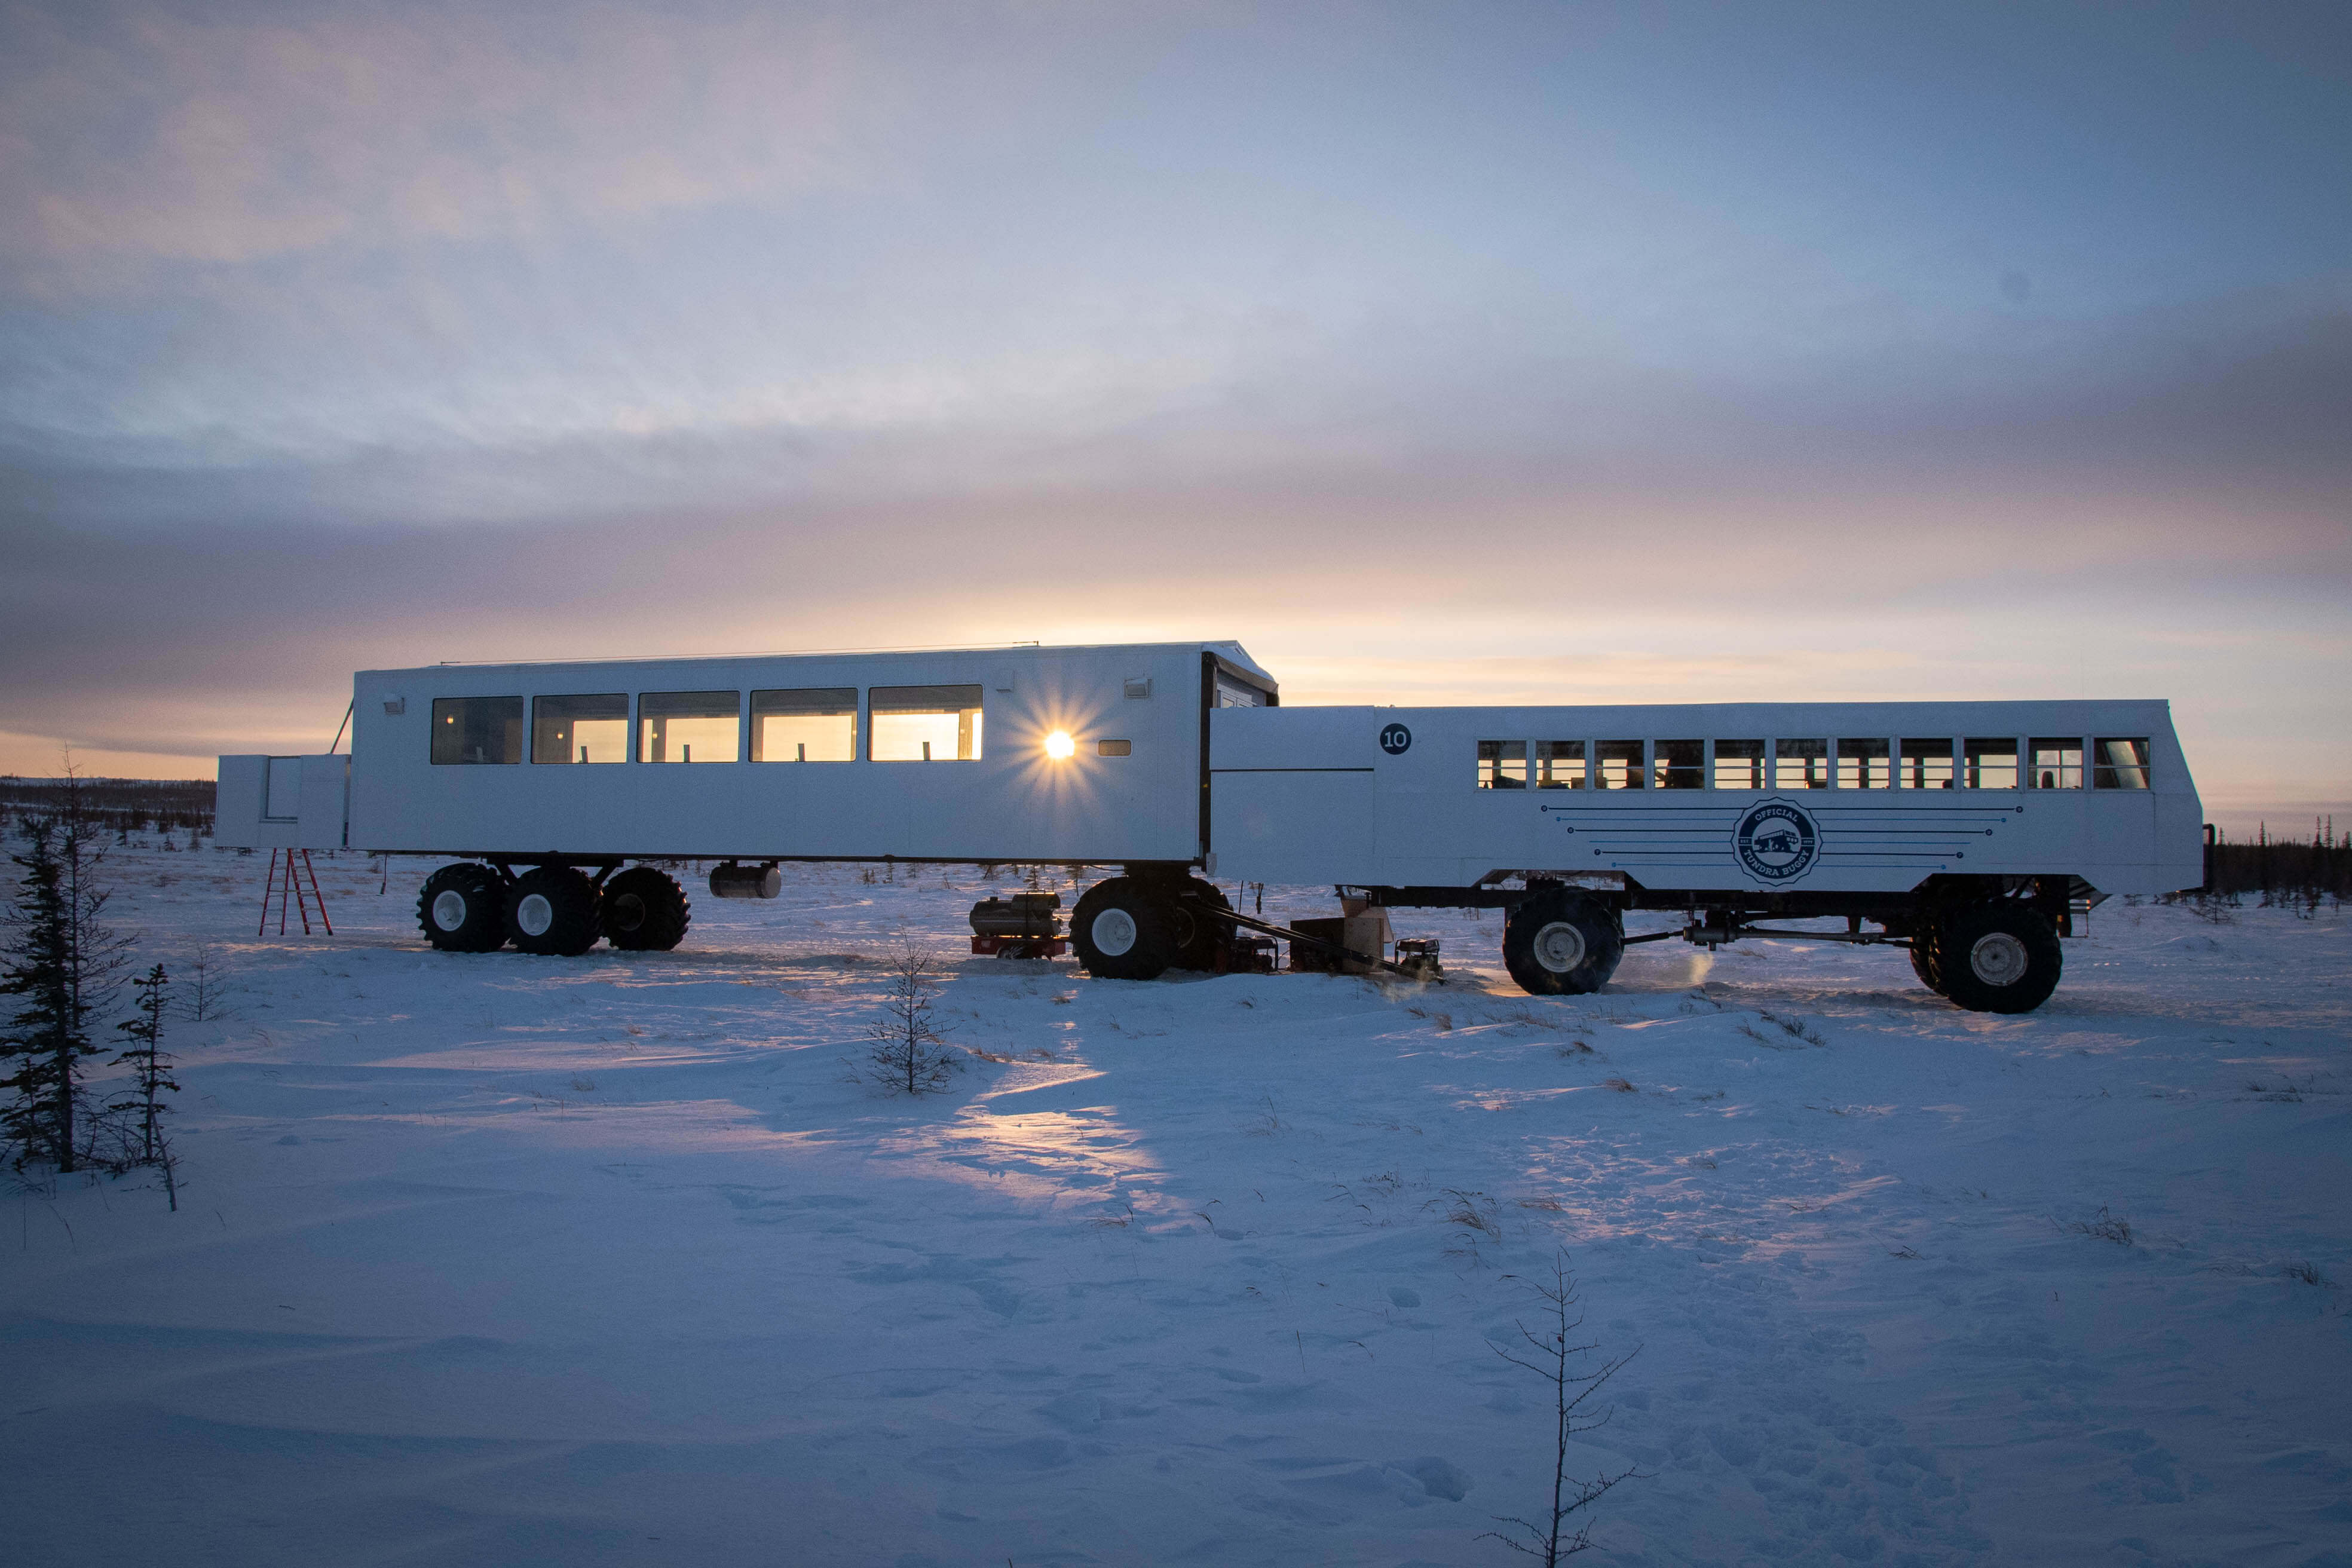 Dan's Diner culinary pop-up restaurant on the frozen tundra in Churchill, Manitoba